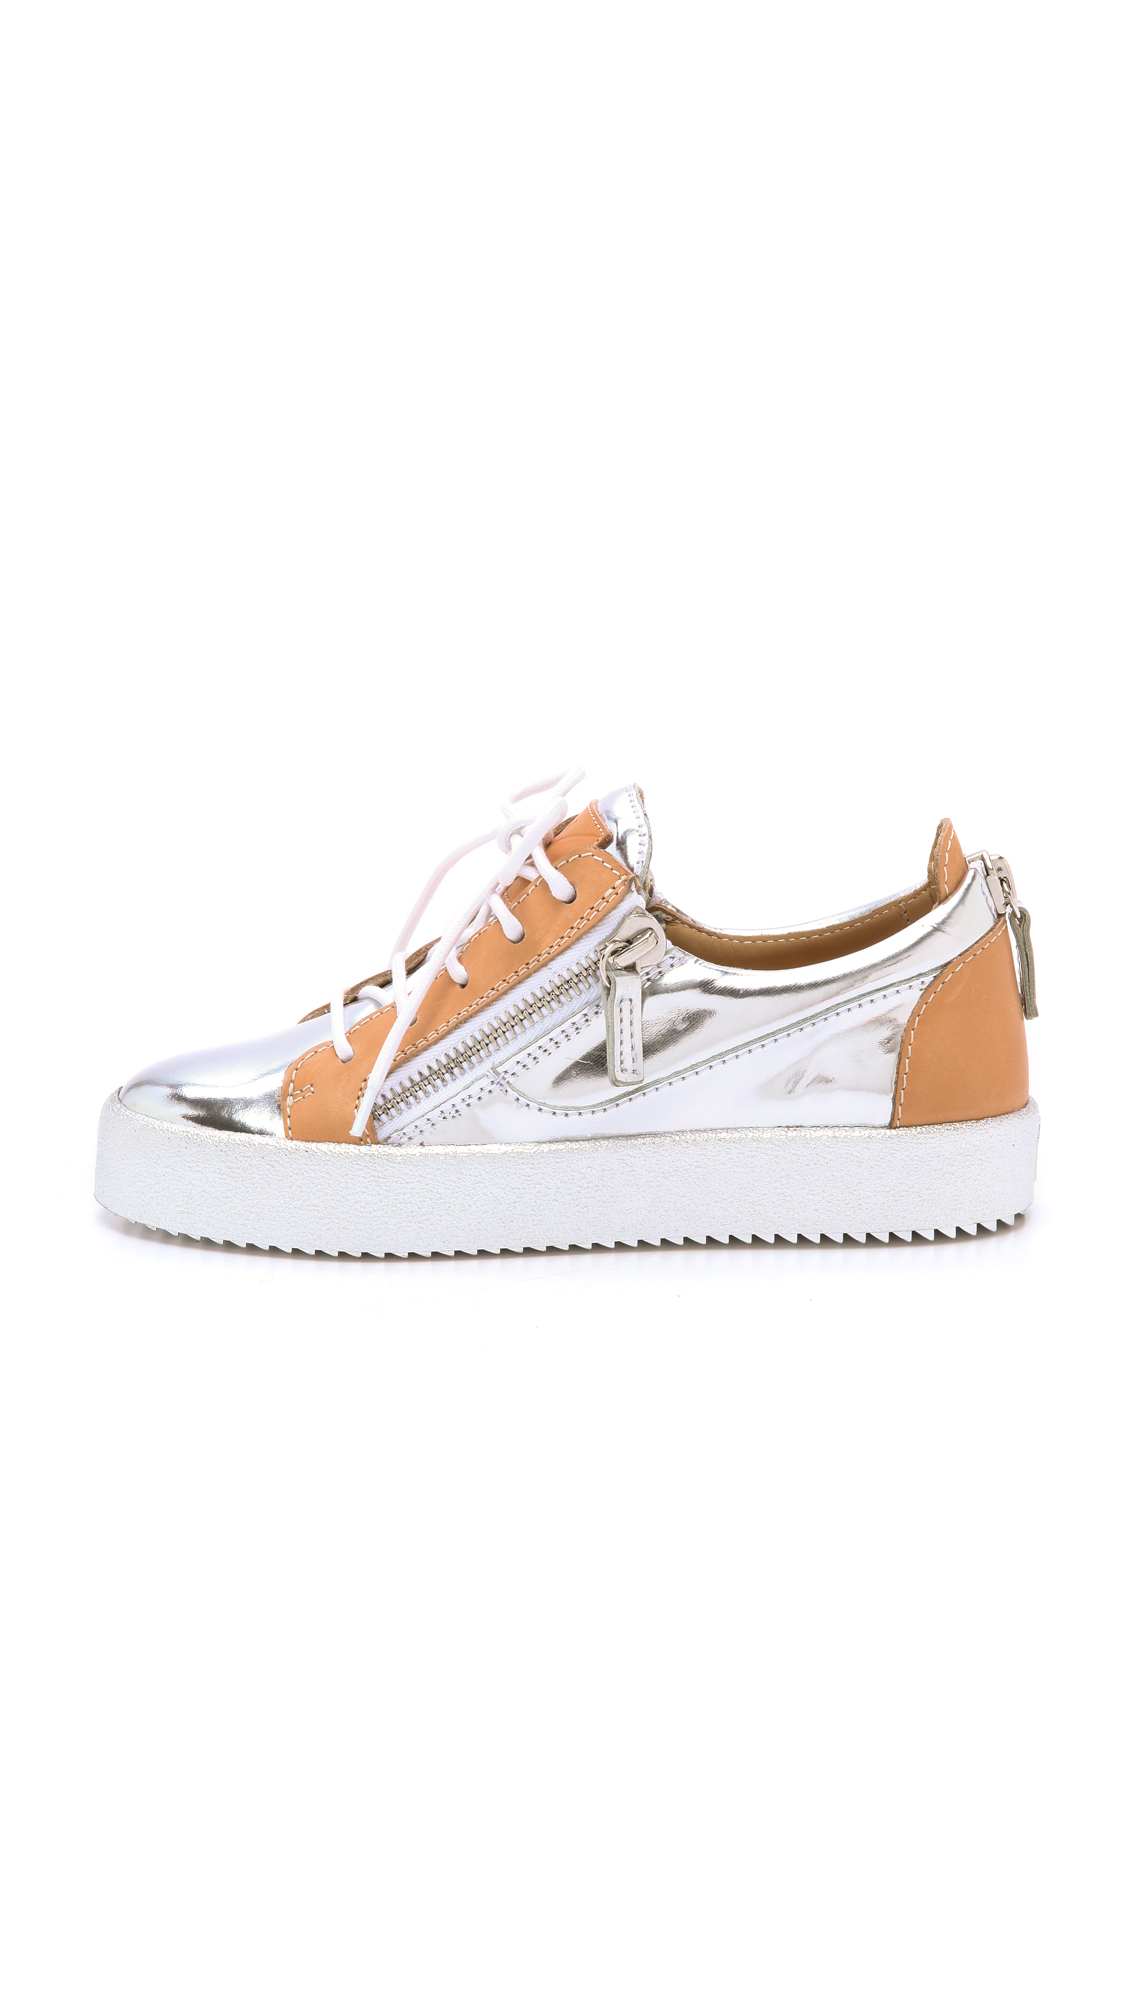 Giuseppe zanotti mirrored low top sneakers